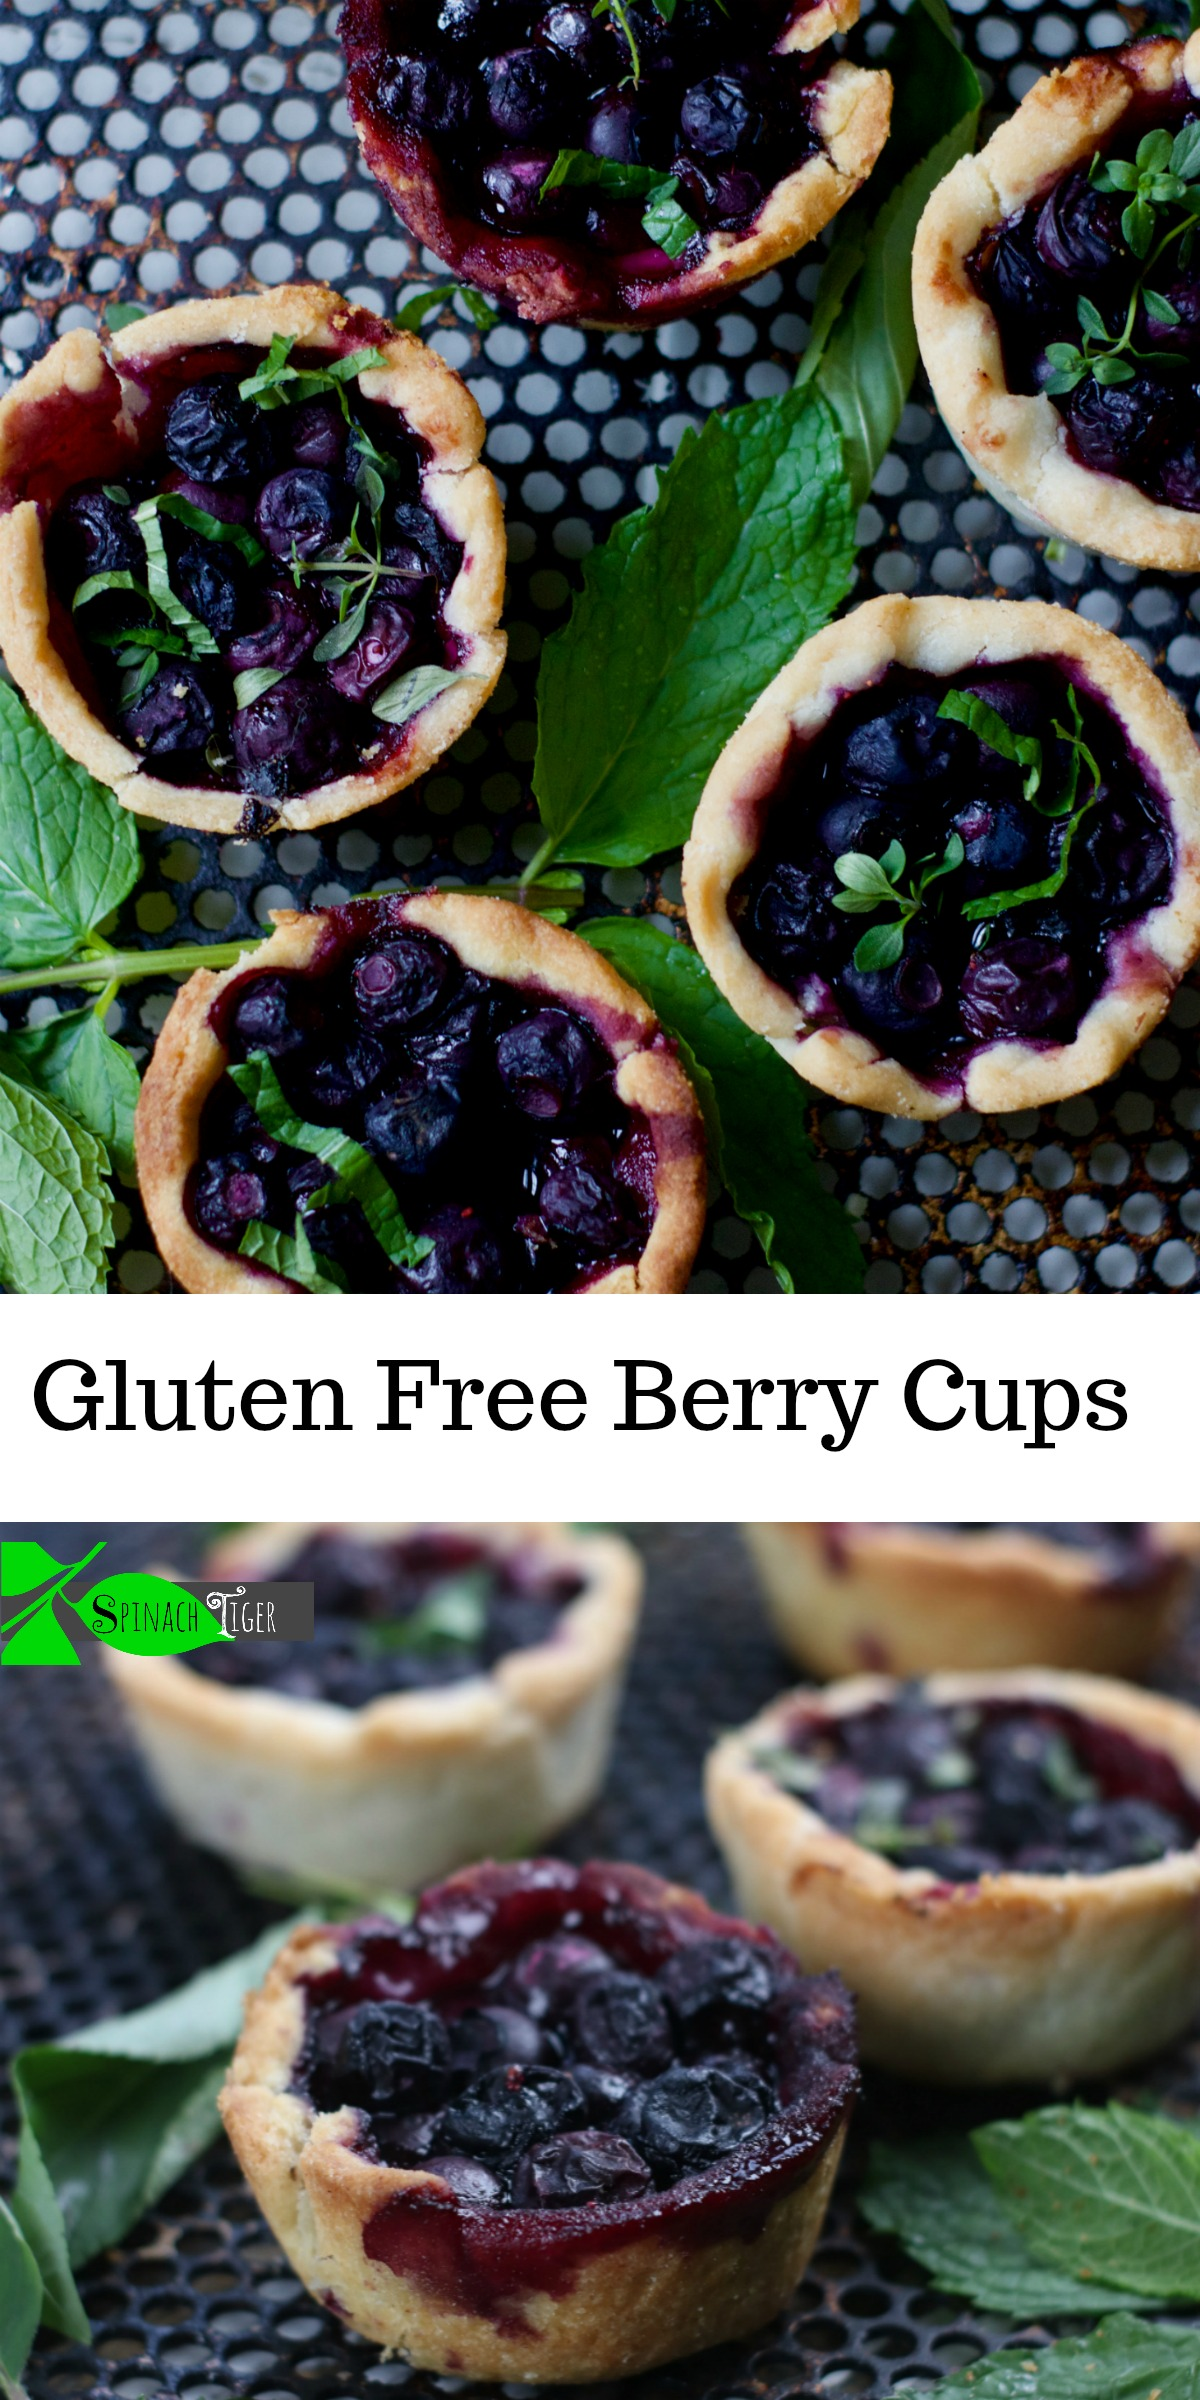 Blueberry Mini Pie Recipes 2 from Spinach Tiger